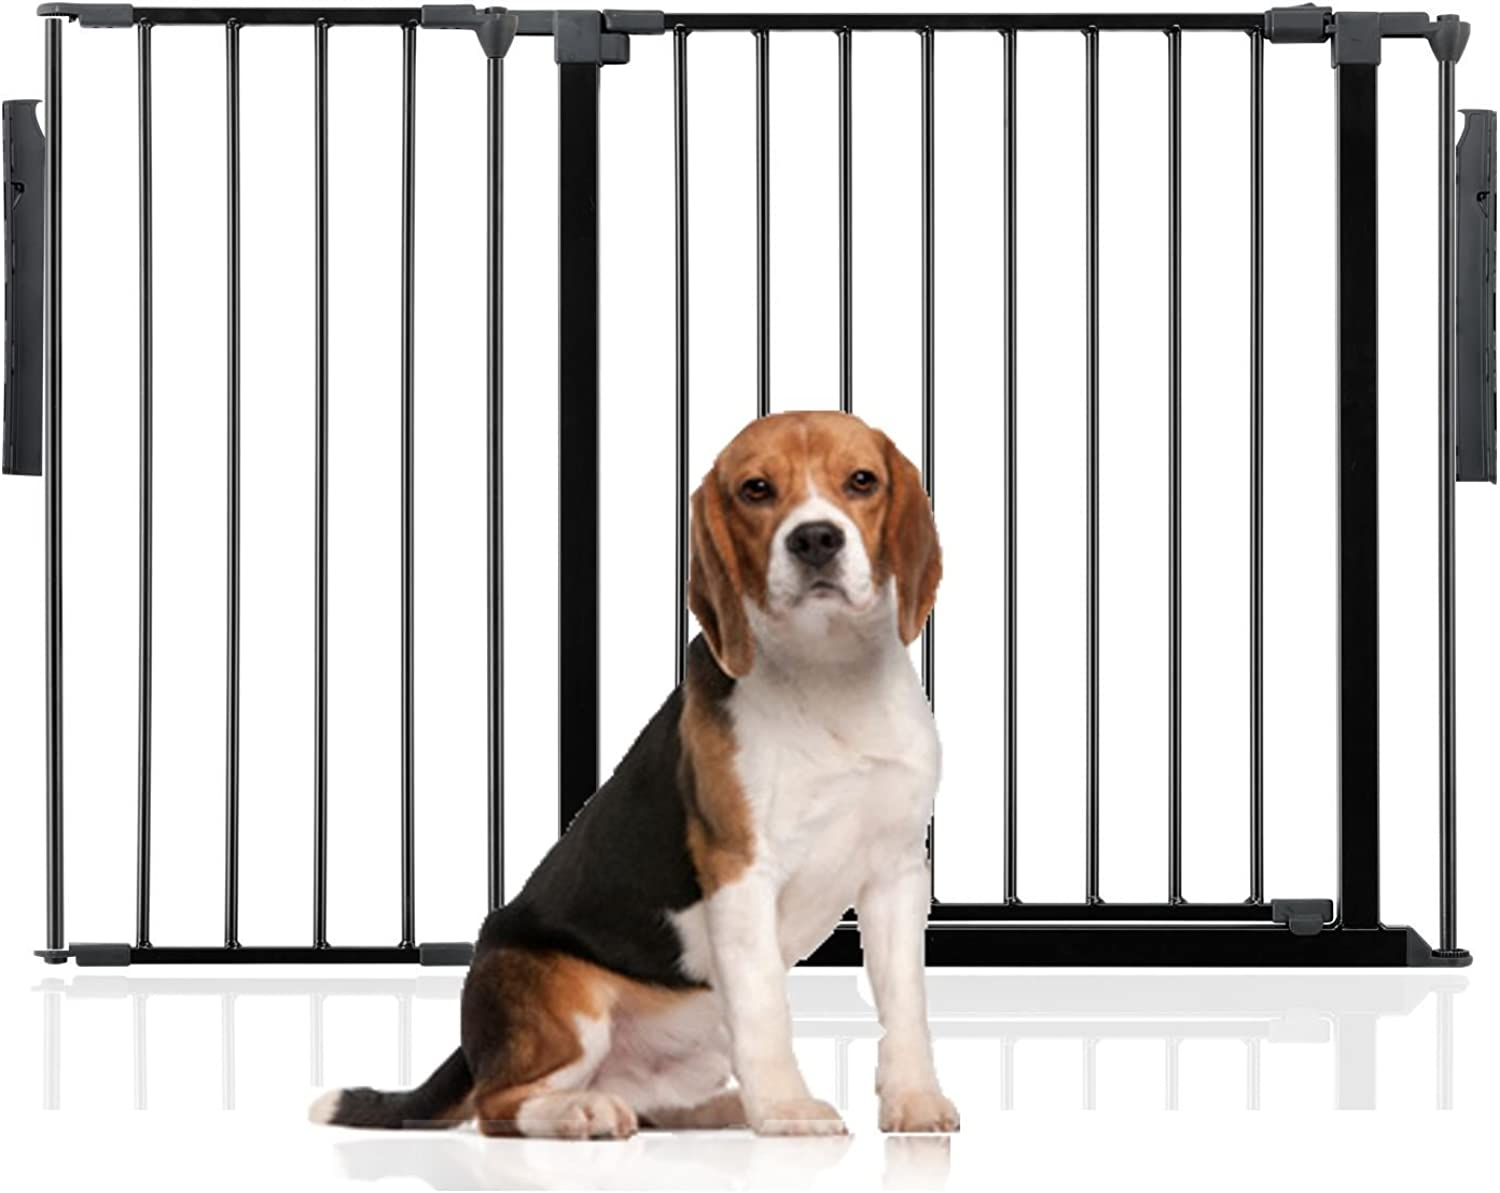 Bettacare Premium Multi Panel Flexible Pet Barrier (Upto 118cm (70cm Tall), Black)